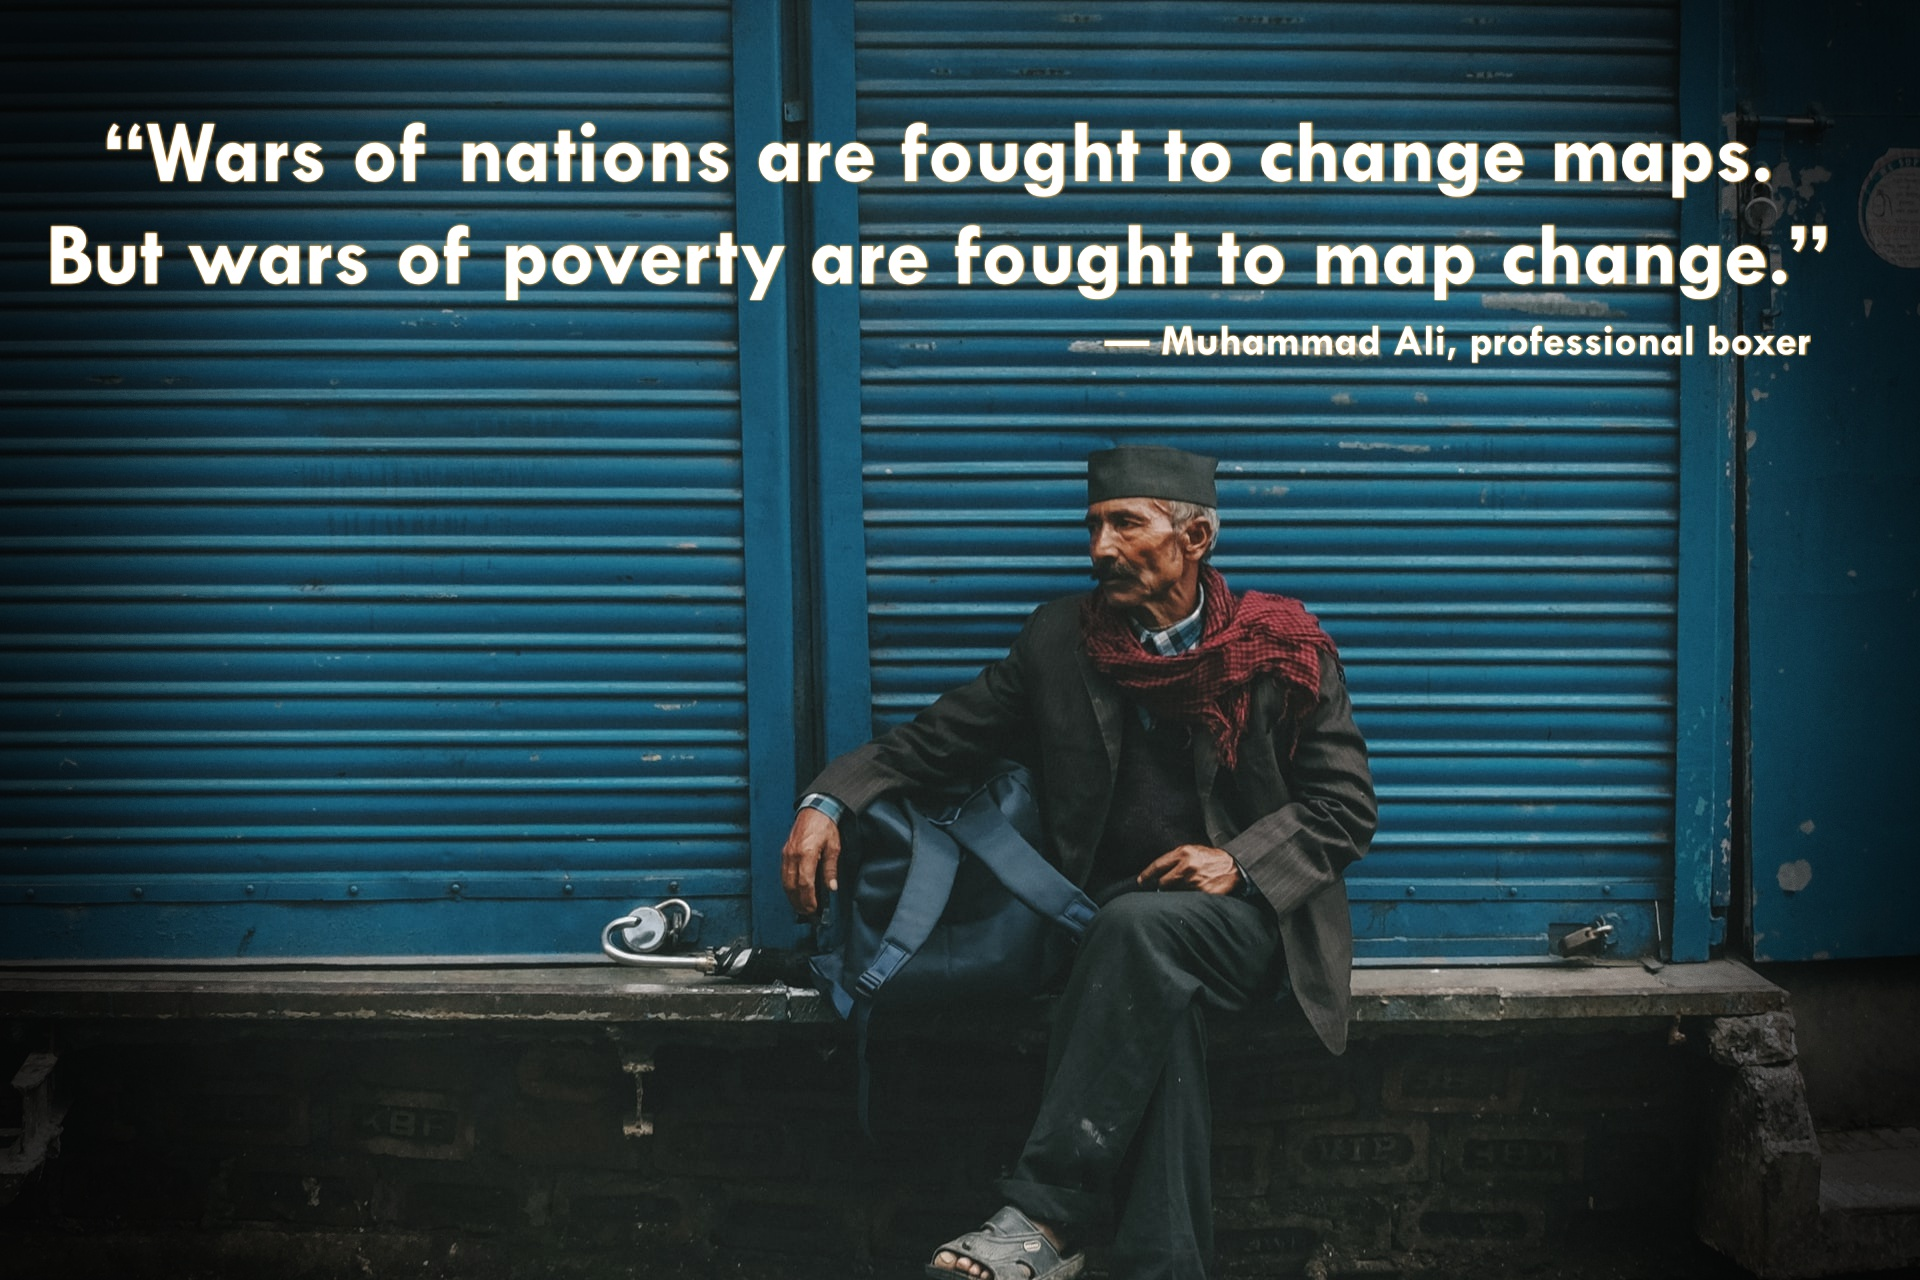 """""""Wars of nations are fought to change maps. But wars of poverty are fought to map change."""" — Muhammad Ali, professional boxer"""